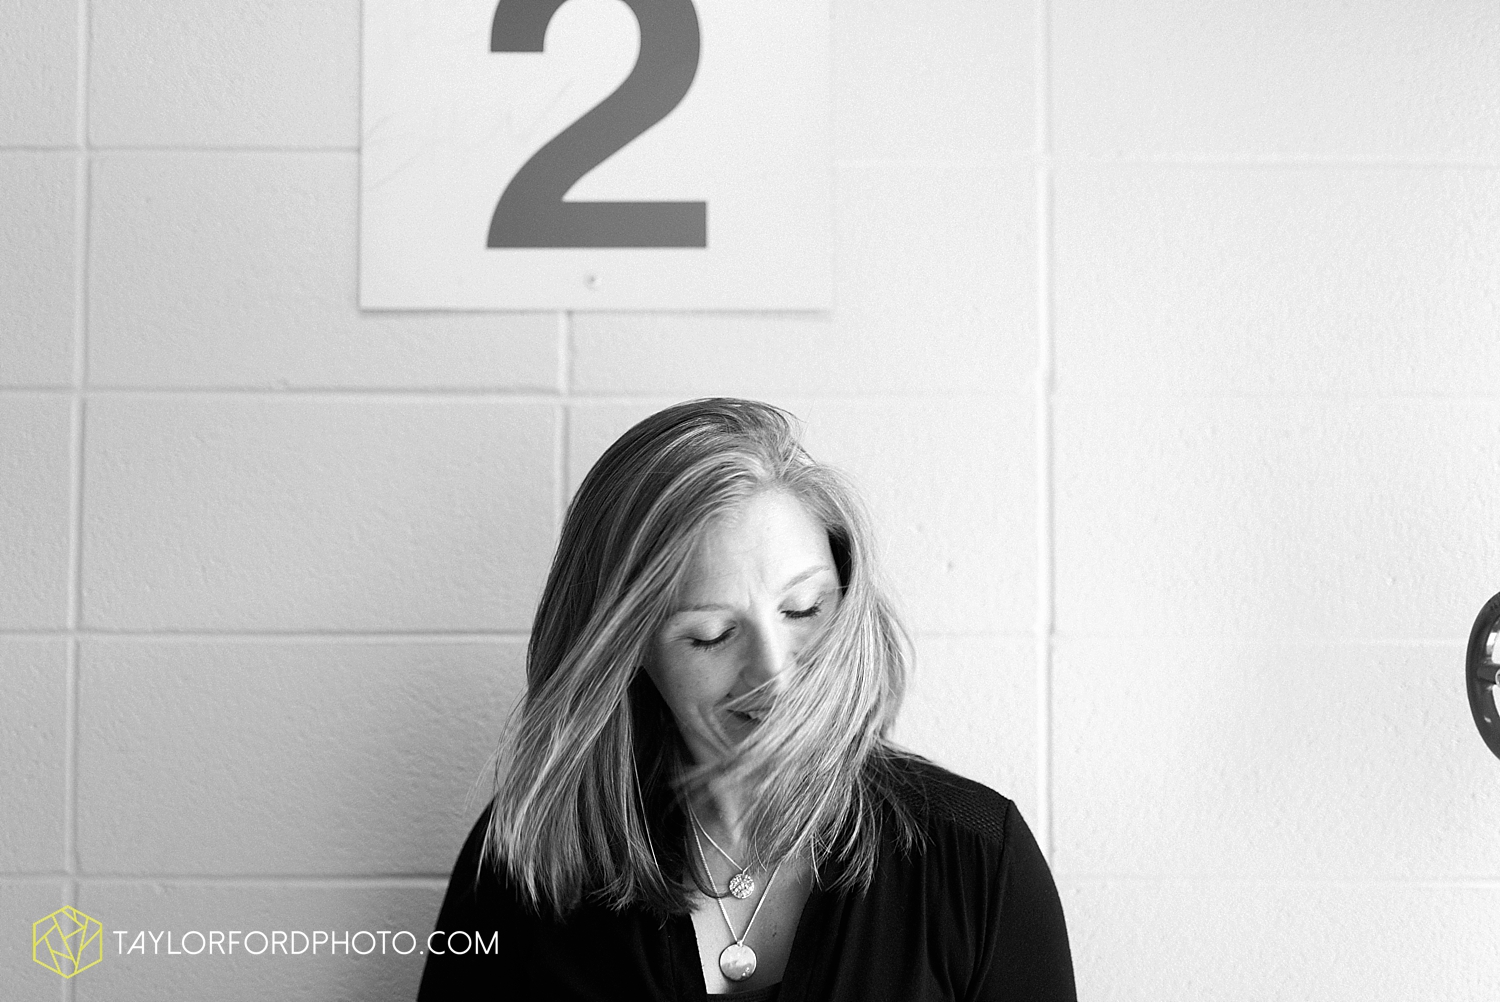 fort_wayne_indiana_portrait_photography_taylor_ford_1087.jpg